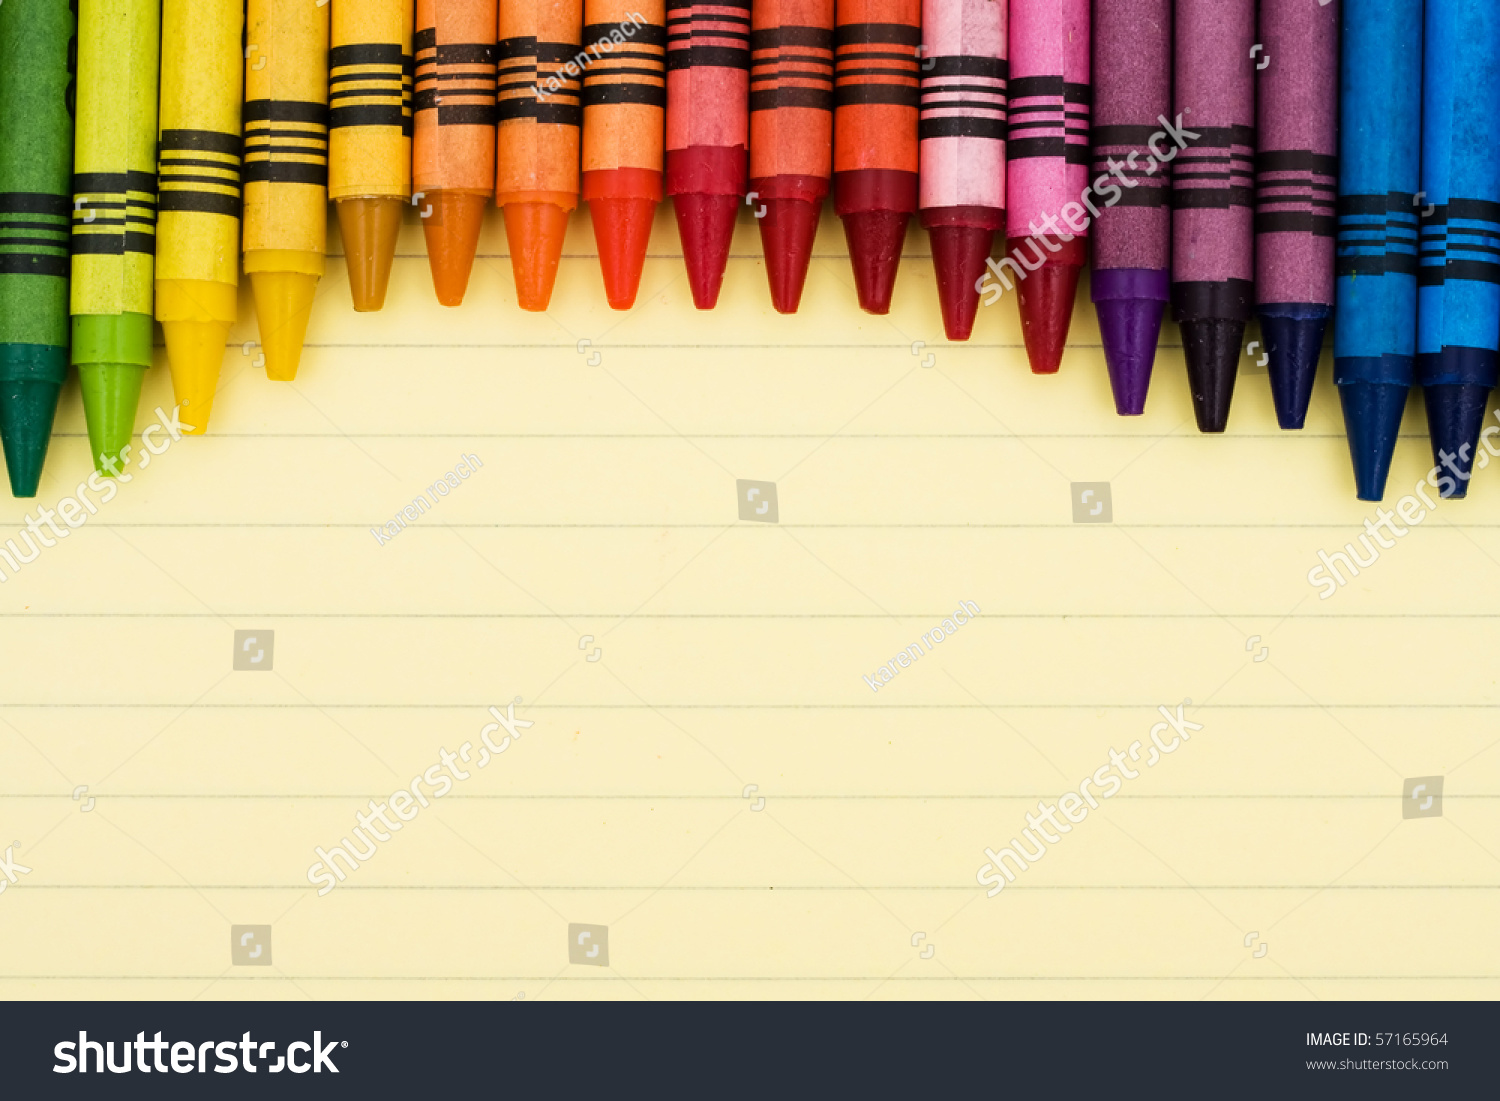 colorful crayons on sheet lined paper stock photo 57165964